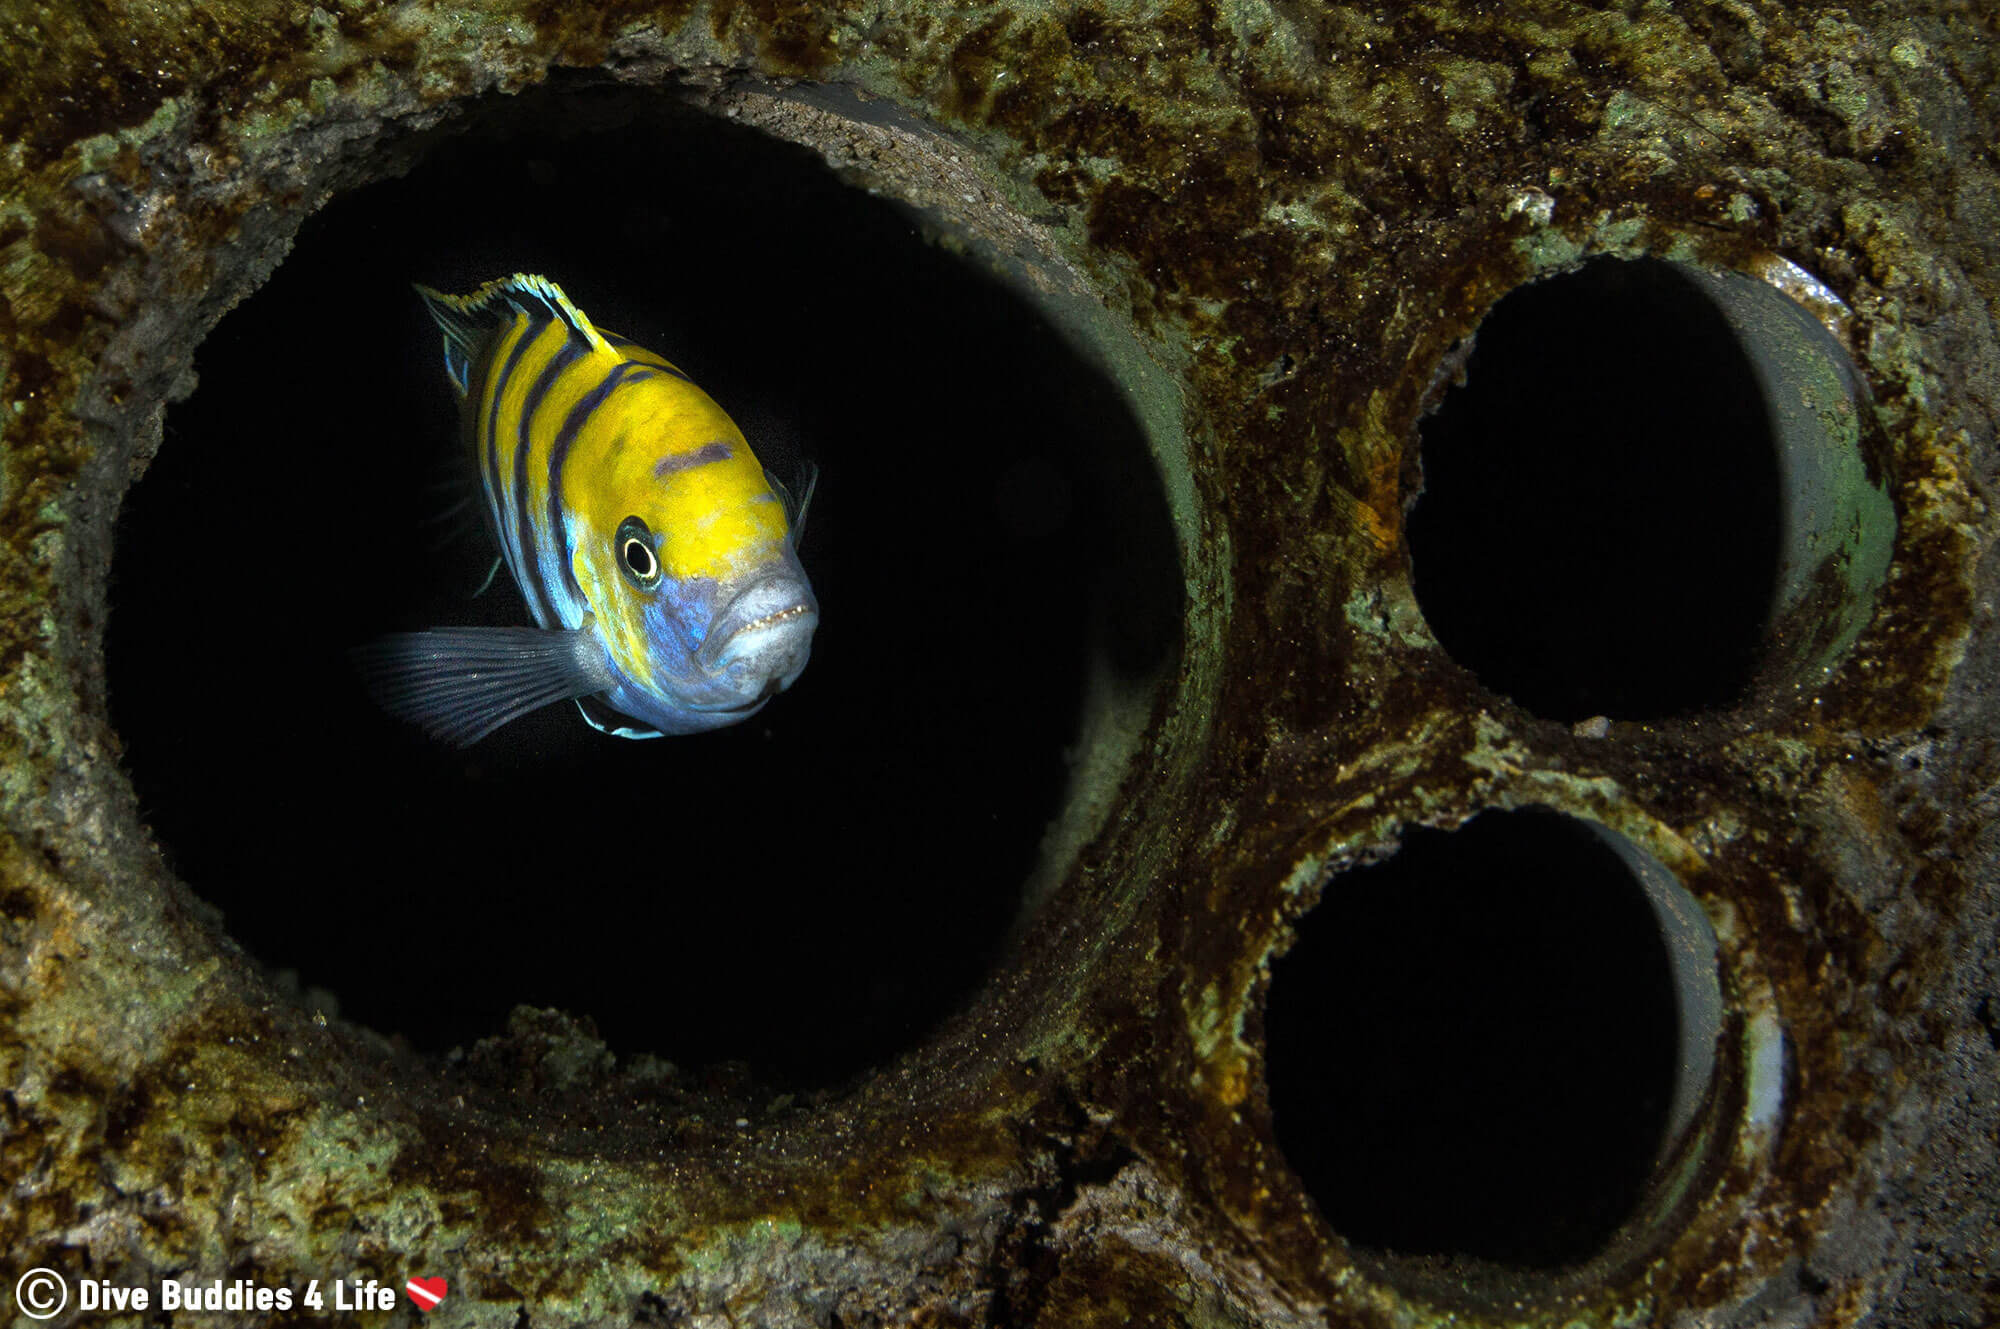 A Freshwater Fish In One Of The Pipes Of Todi The Dive Aquarium In Belgium, Europe